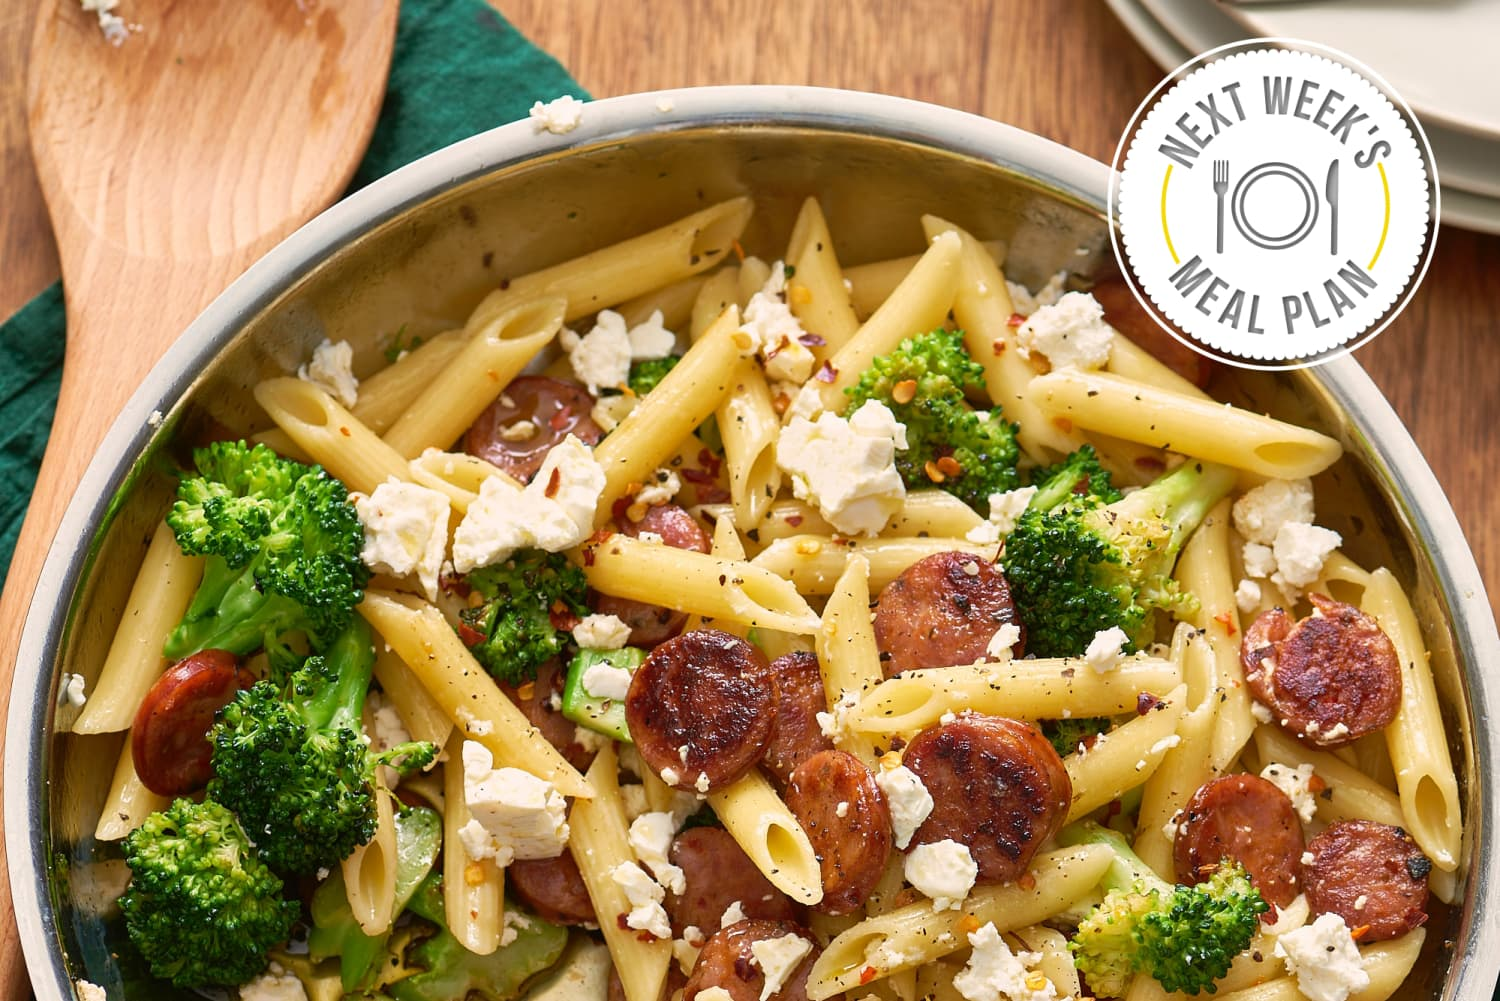 Next Week's Meal Plan: 5 Flexible Dinners for Picky Eaters